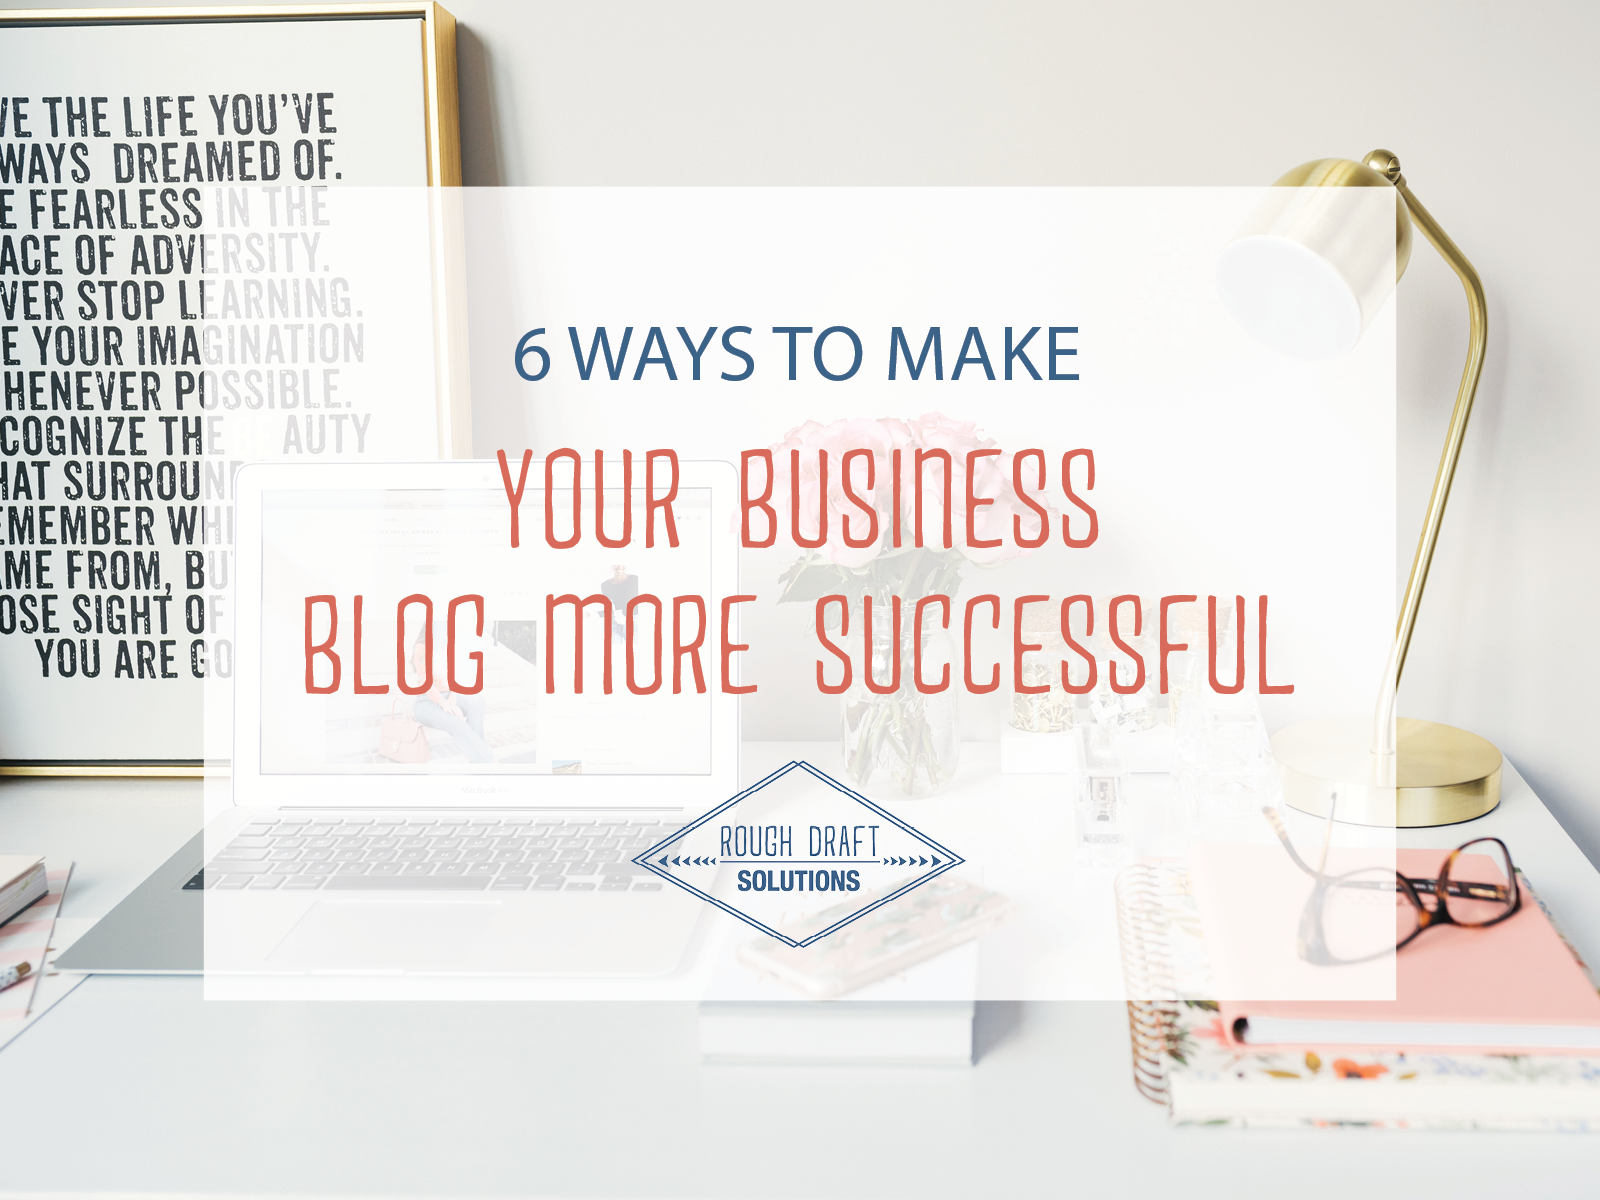 6_Ways_to_Make_Your_Business_Blog_More_Successul.png